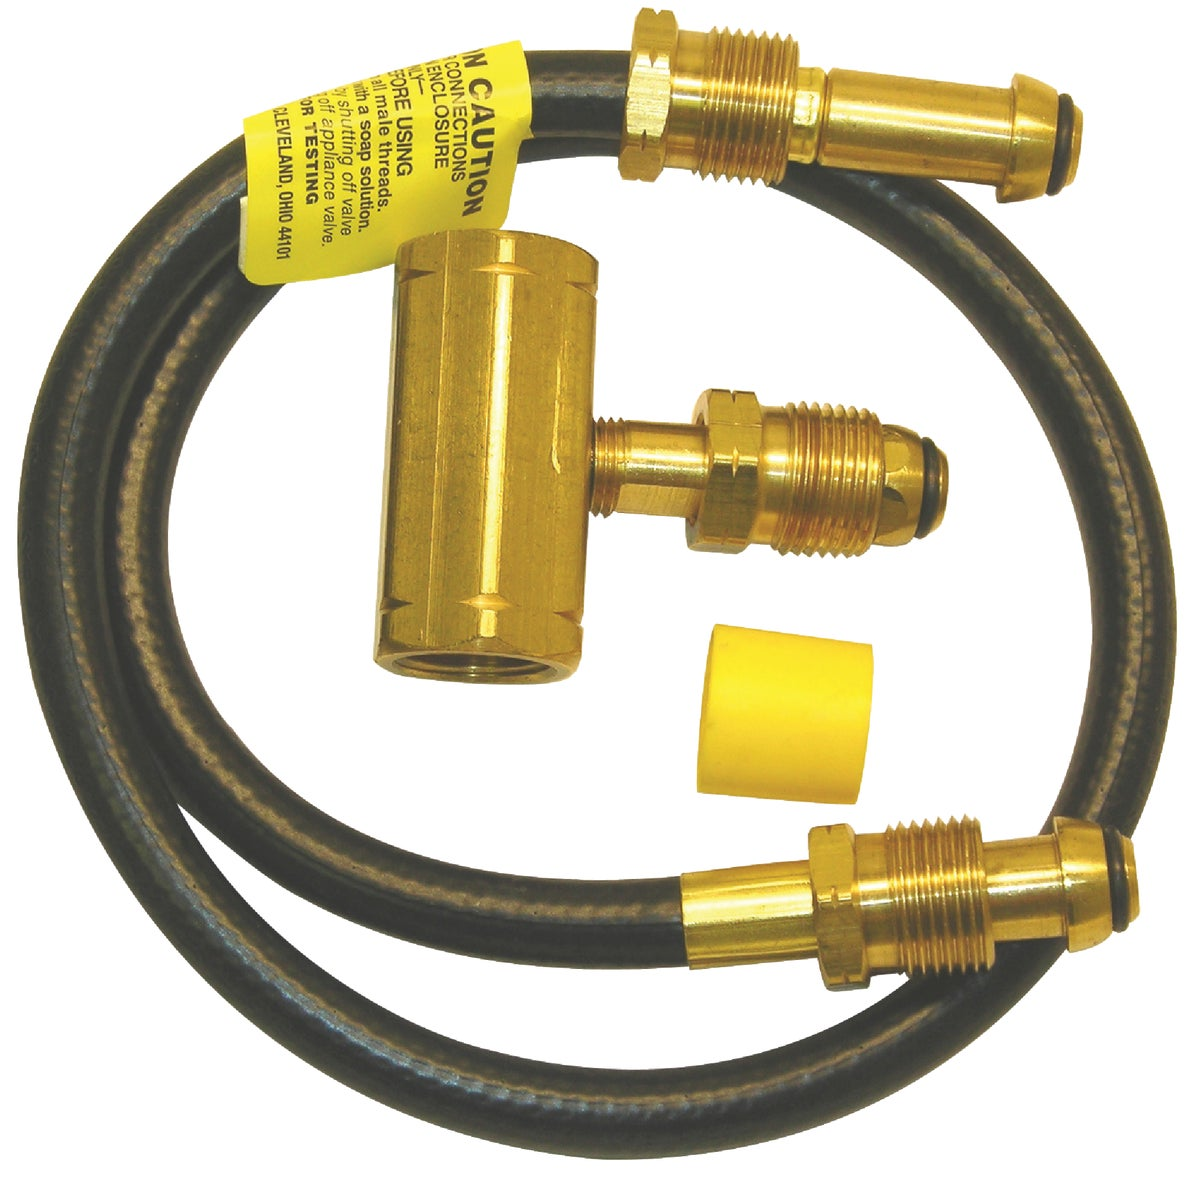 2 TANK HOOK-UP KIT - F273737 by Mr Heater Corp